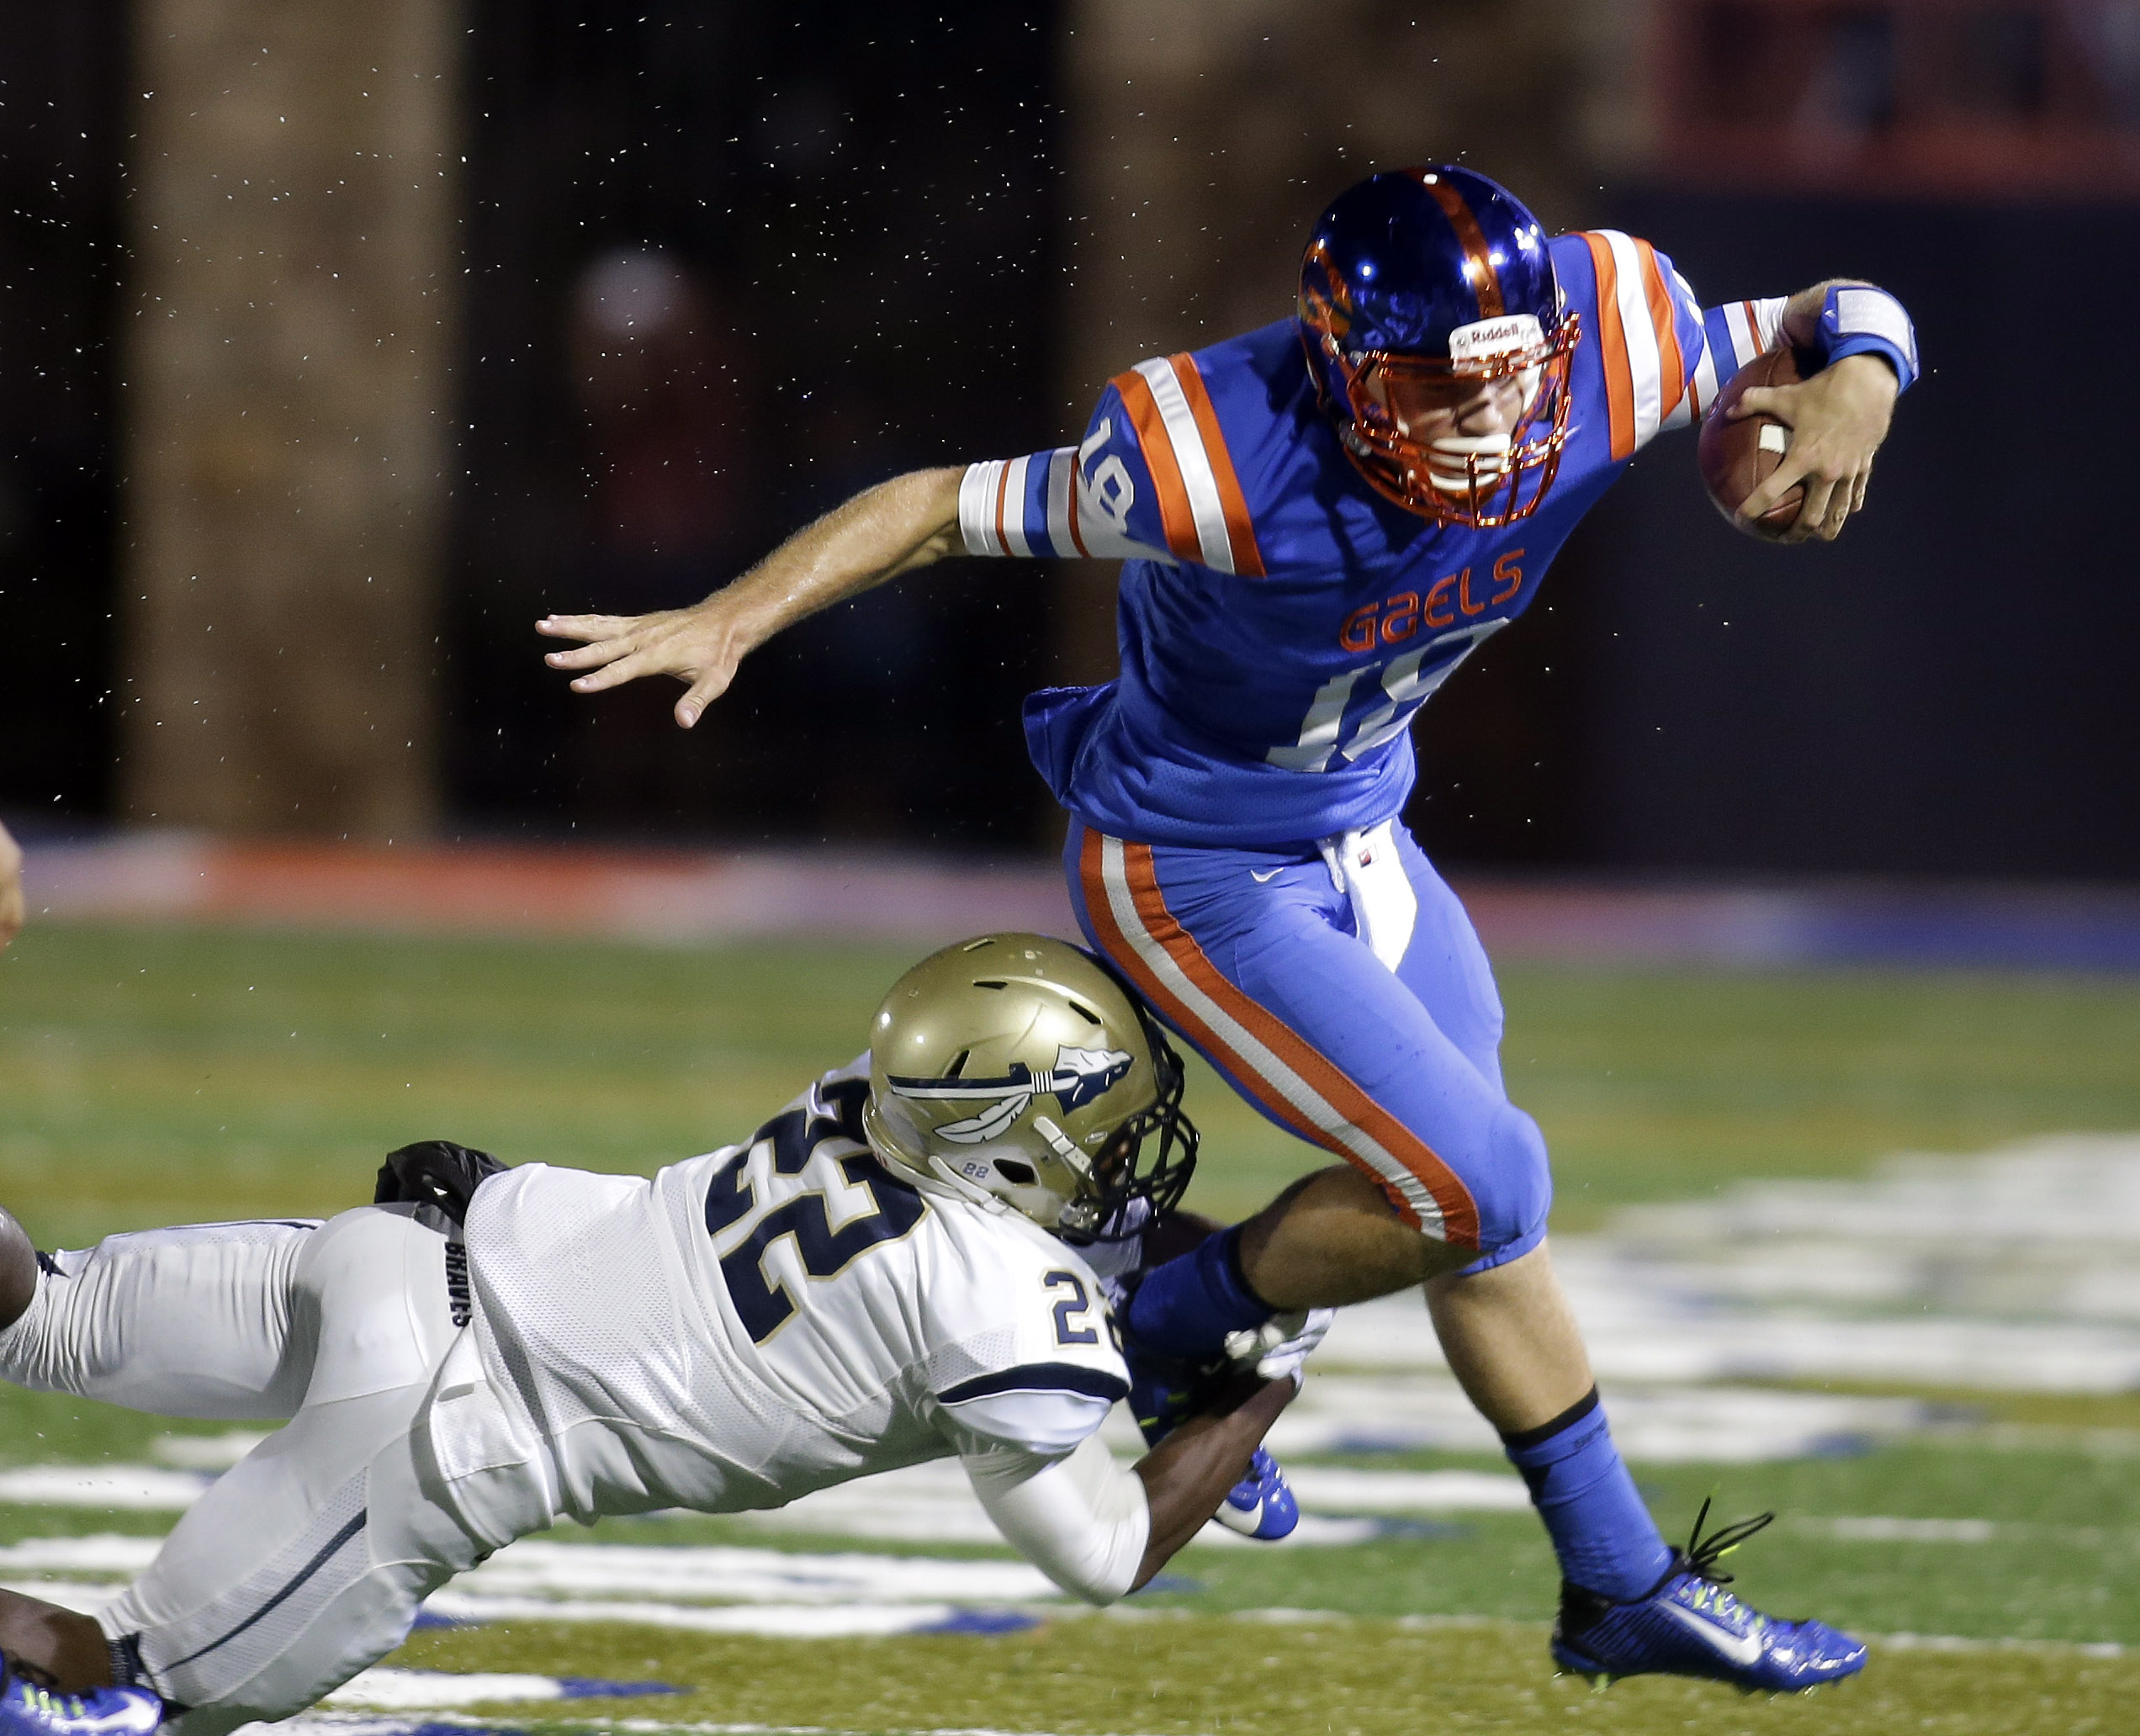 FILE - In this Sept. 26, 2014, file photo, Bishop Gorman quarterback Tate Martell is tackled by St. John Bosco's Clifford Simms during the first half of a high school football game in Las Vegas. Martell, the nation's No. 2 junior quarterback according to